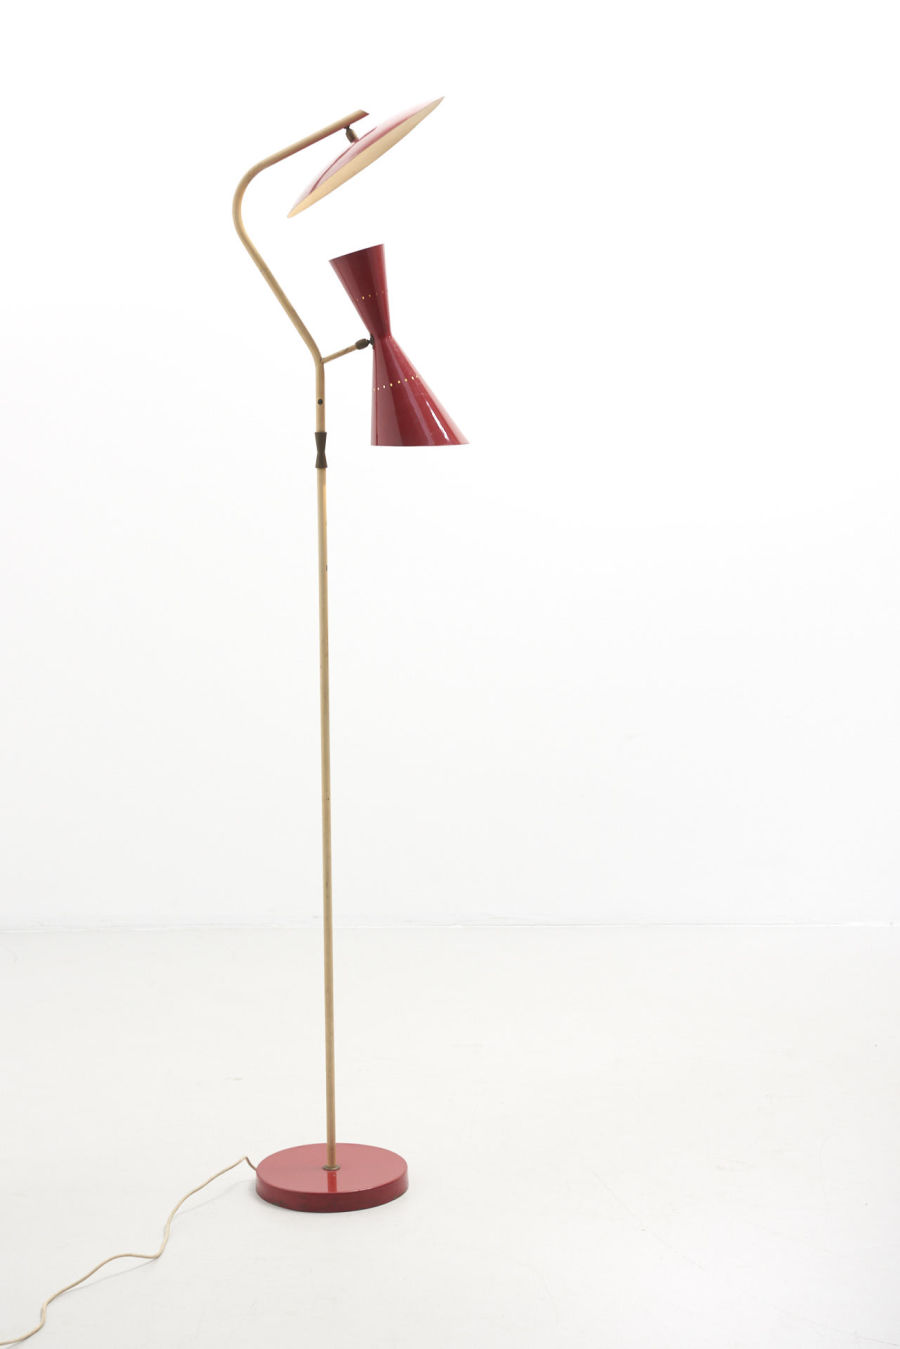 modestfurniture-vintage-2228-floor-lamp-red-indirect-up-down-red-shade-italy-195001